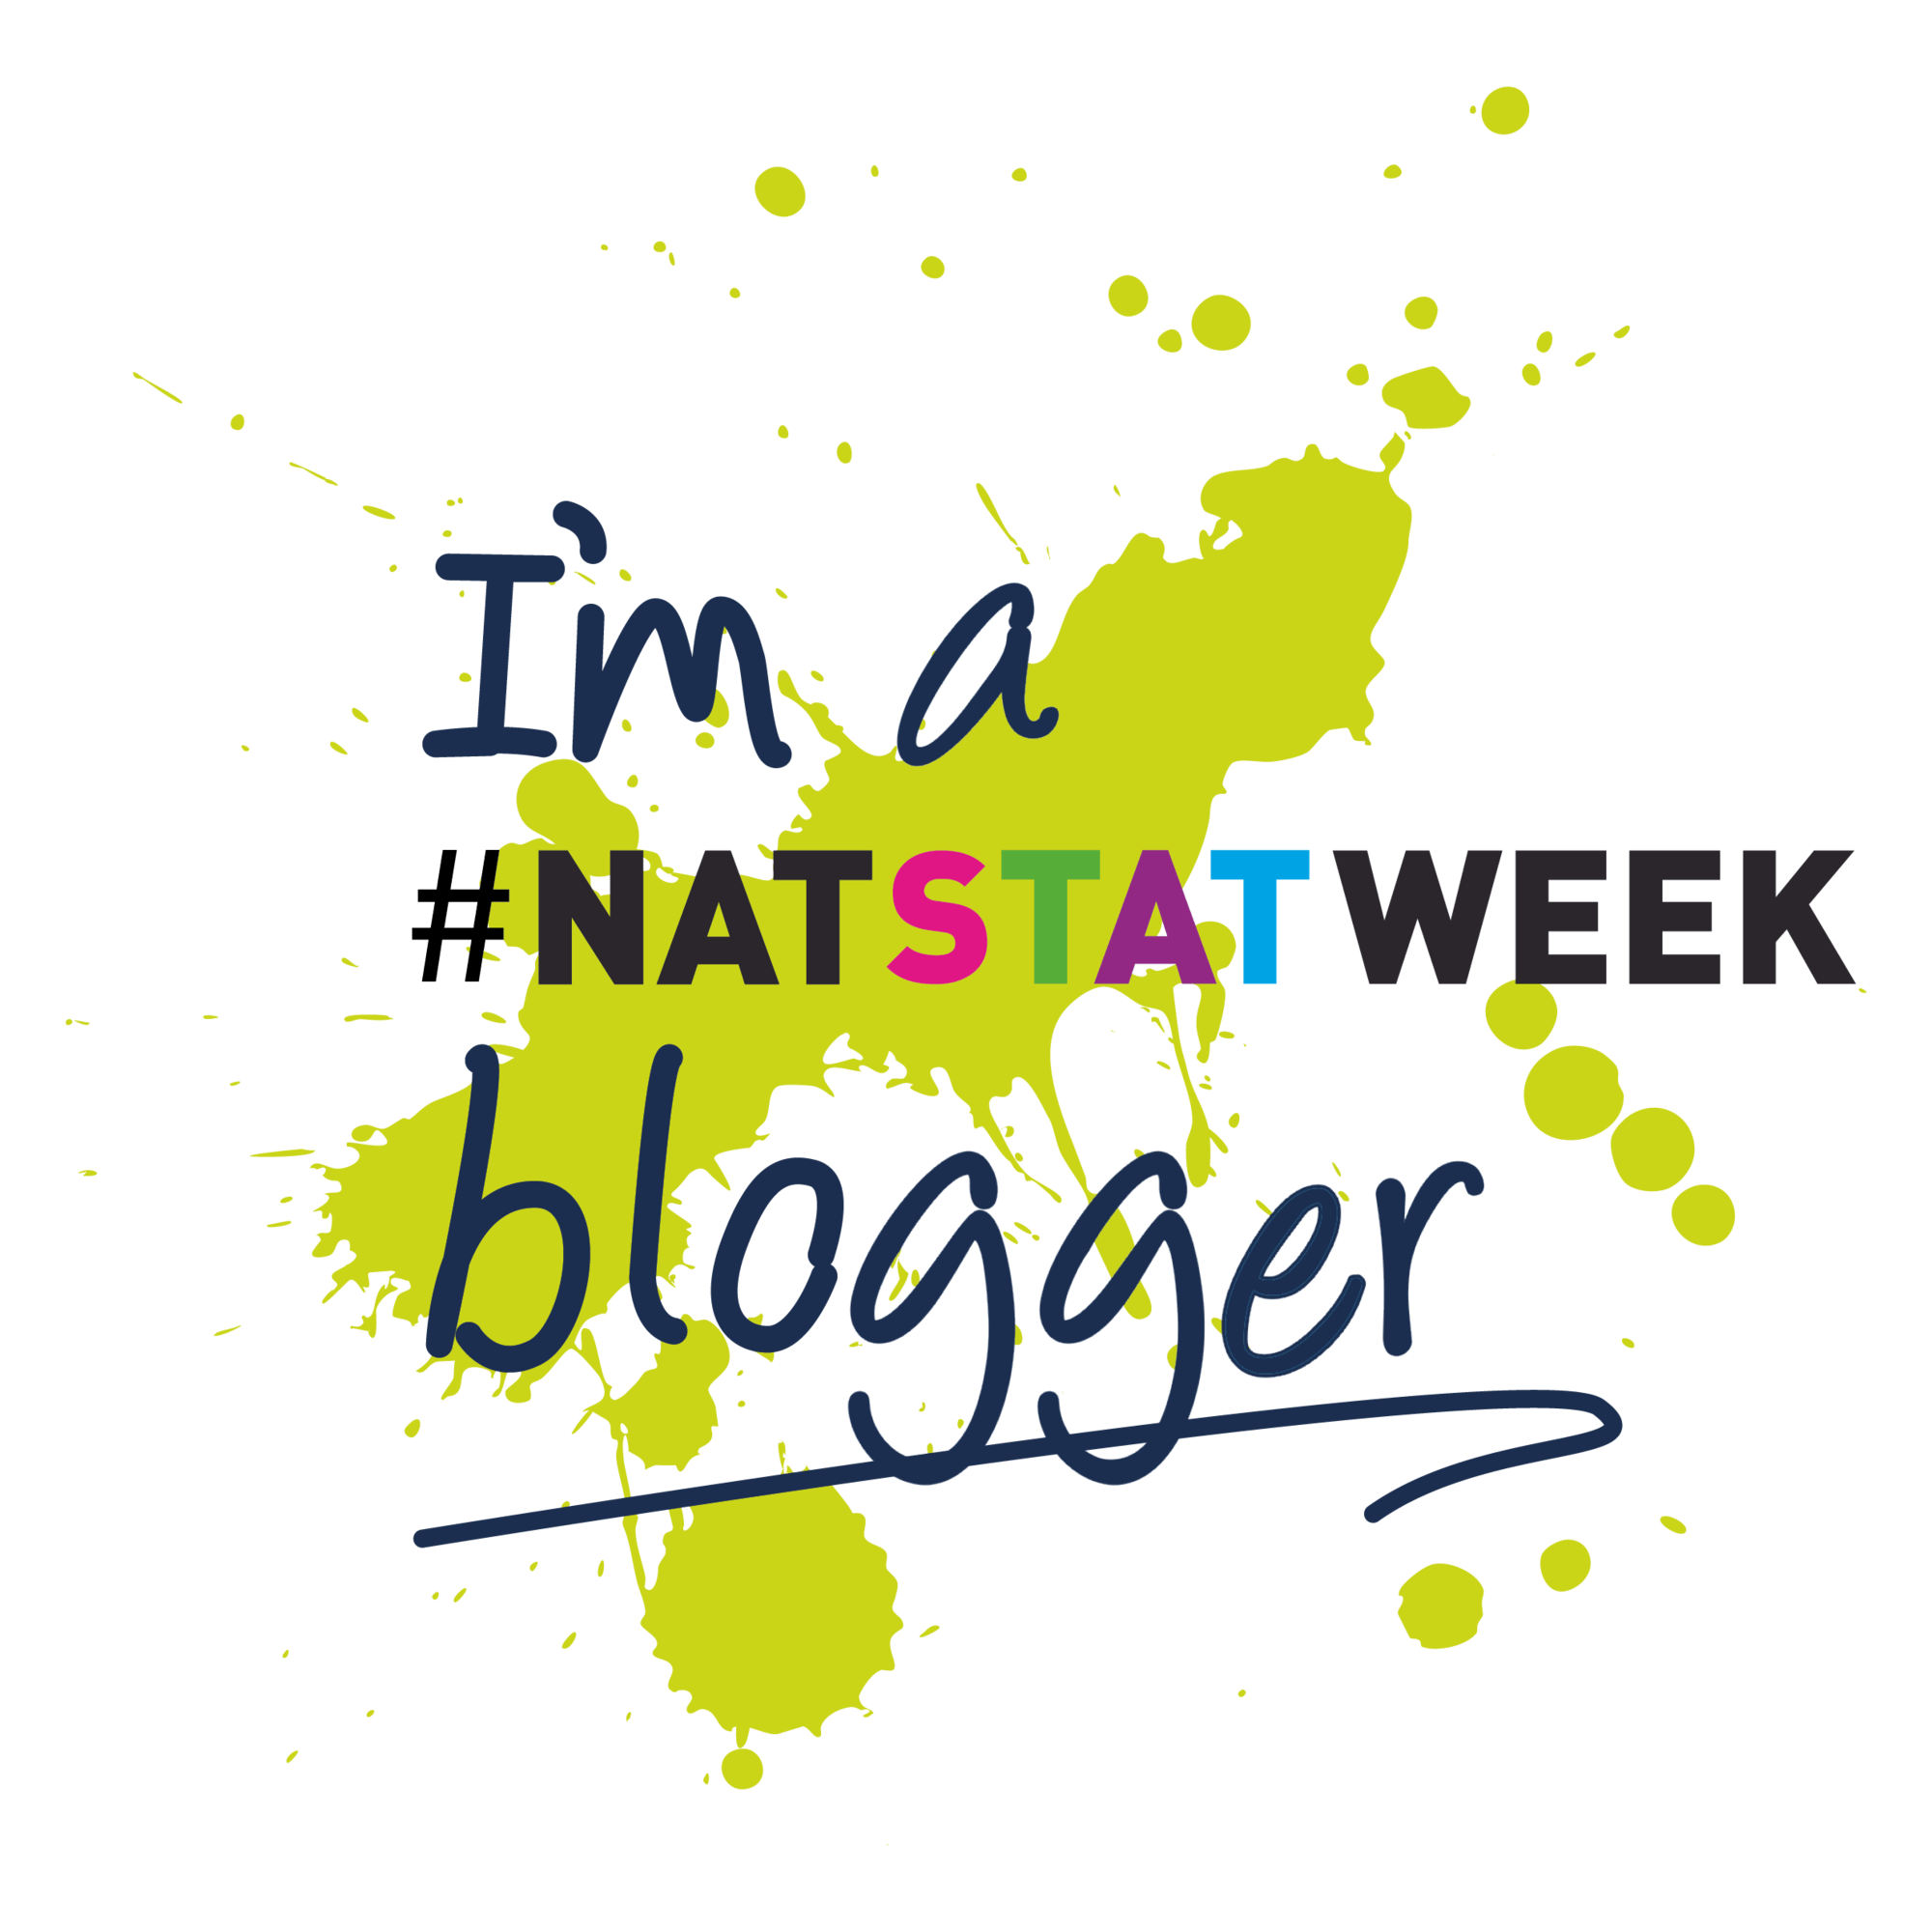 #NatStatWeek